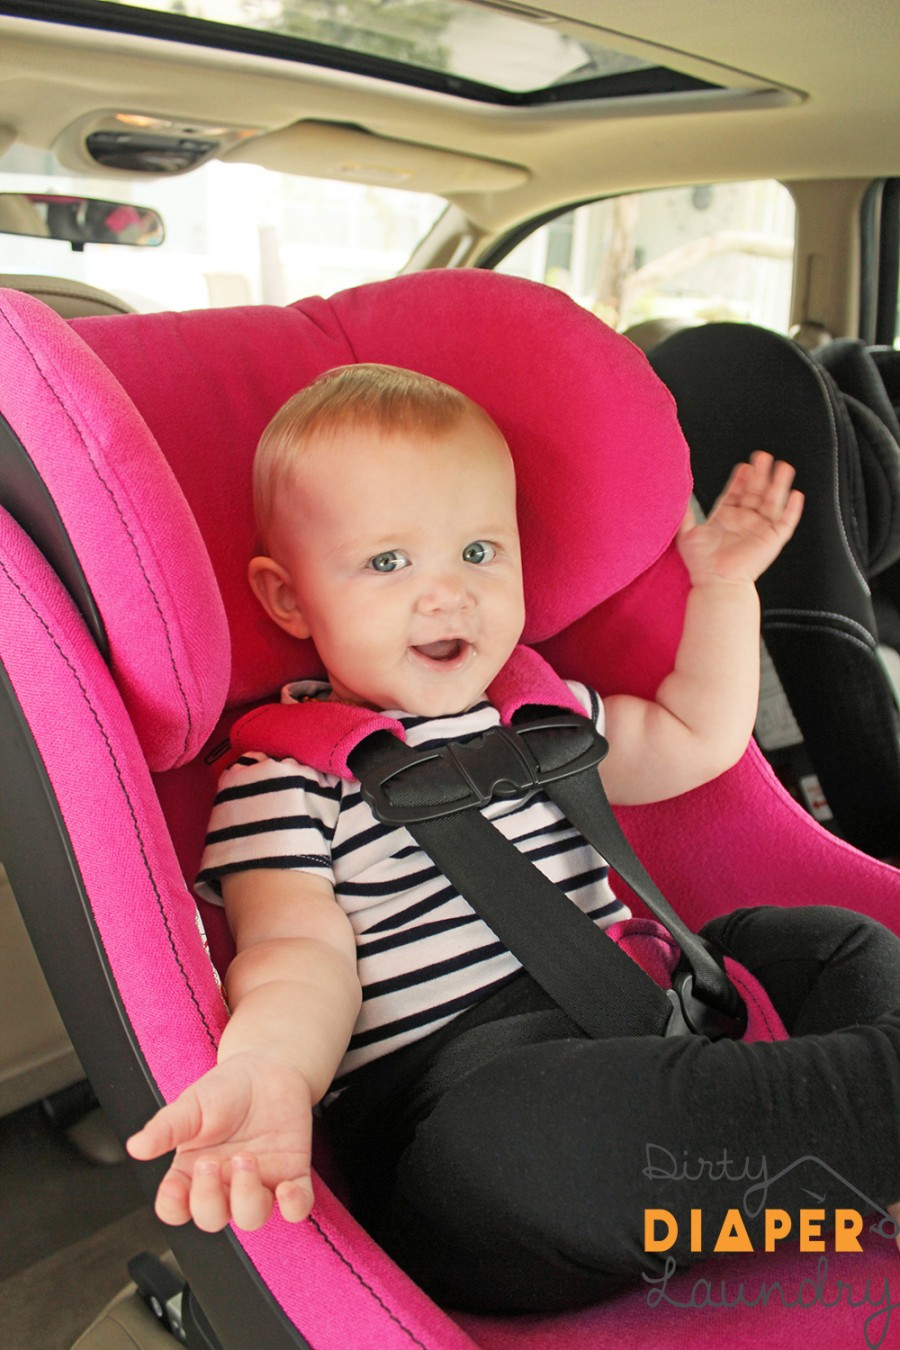 clek foonf convertible car seat review ddl gives a foonf dirty diaper laundry. Black Bedroom Furniture Sets. Home Design Ideas